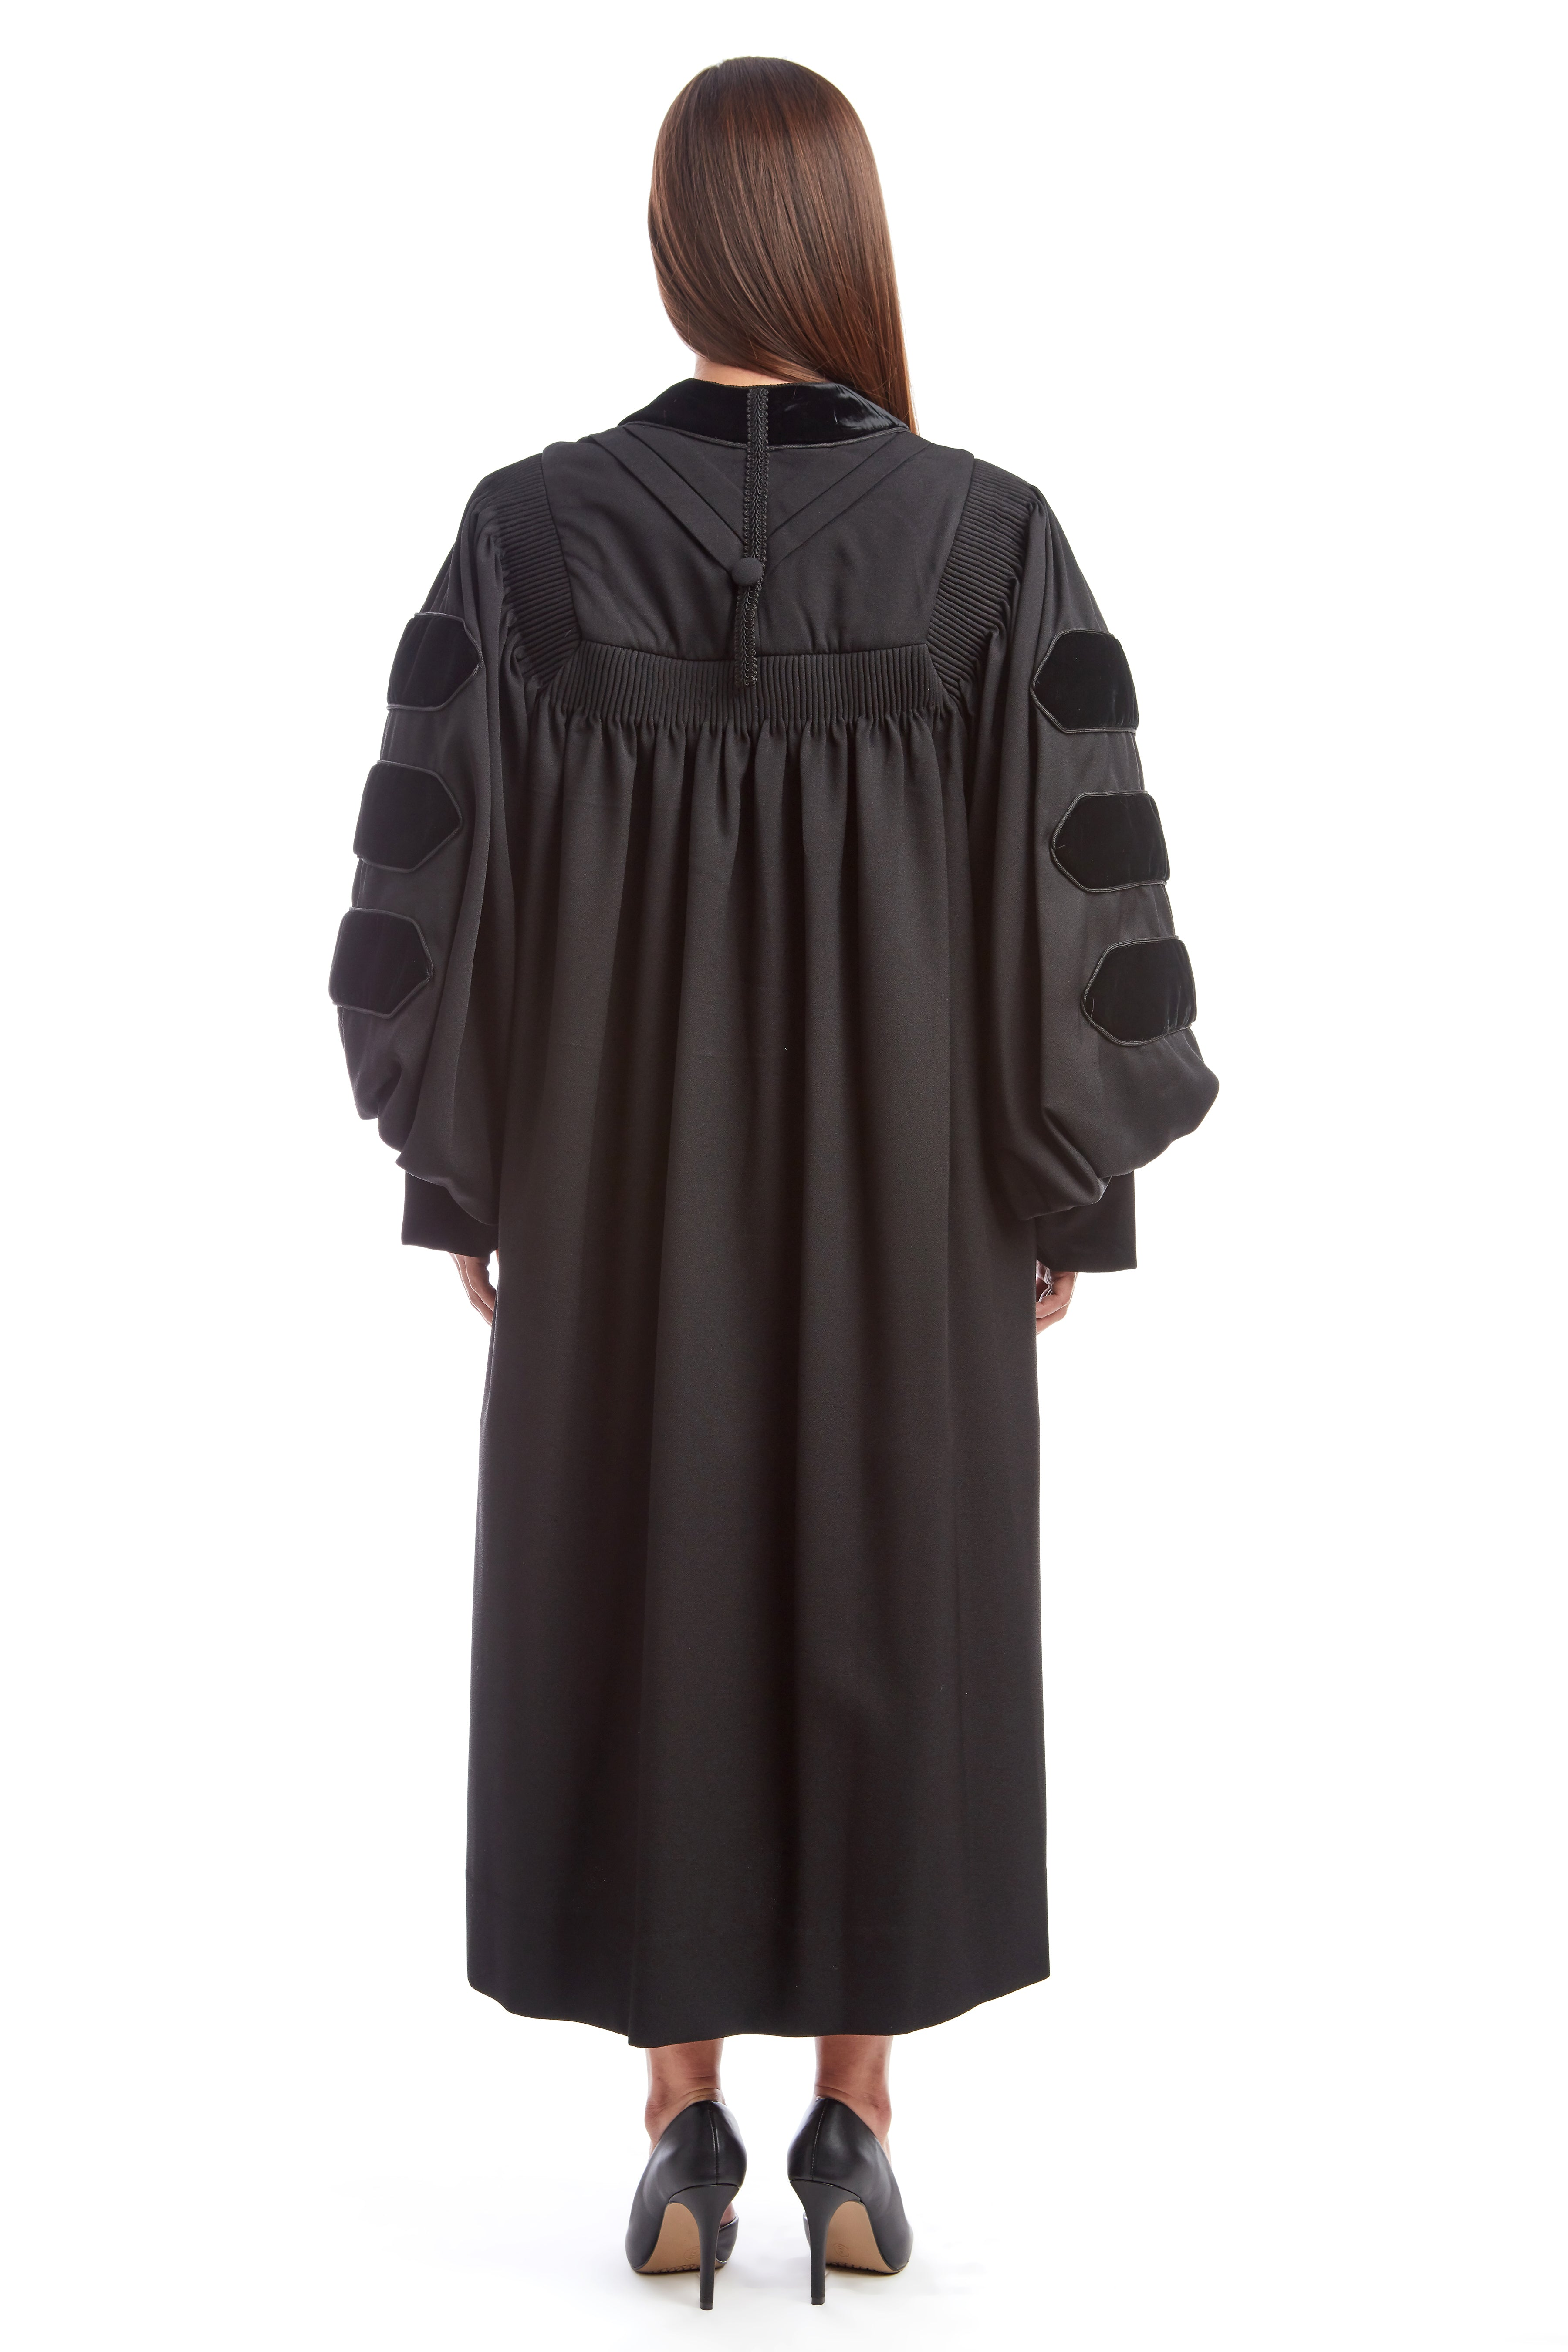 Premium Black Doctoral Gown with Black Piping for Graduation